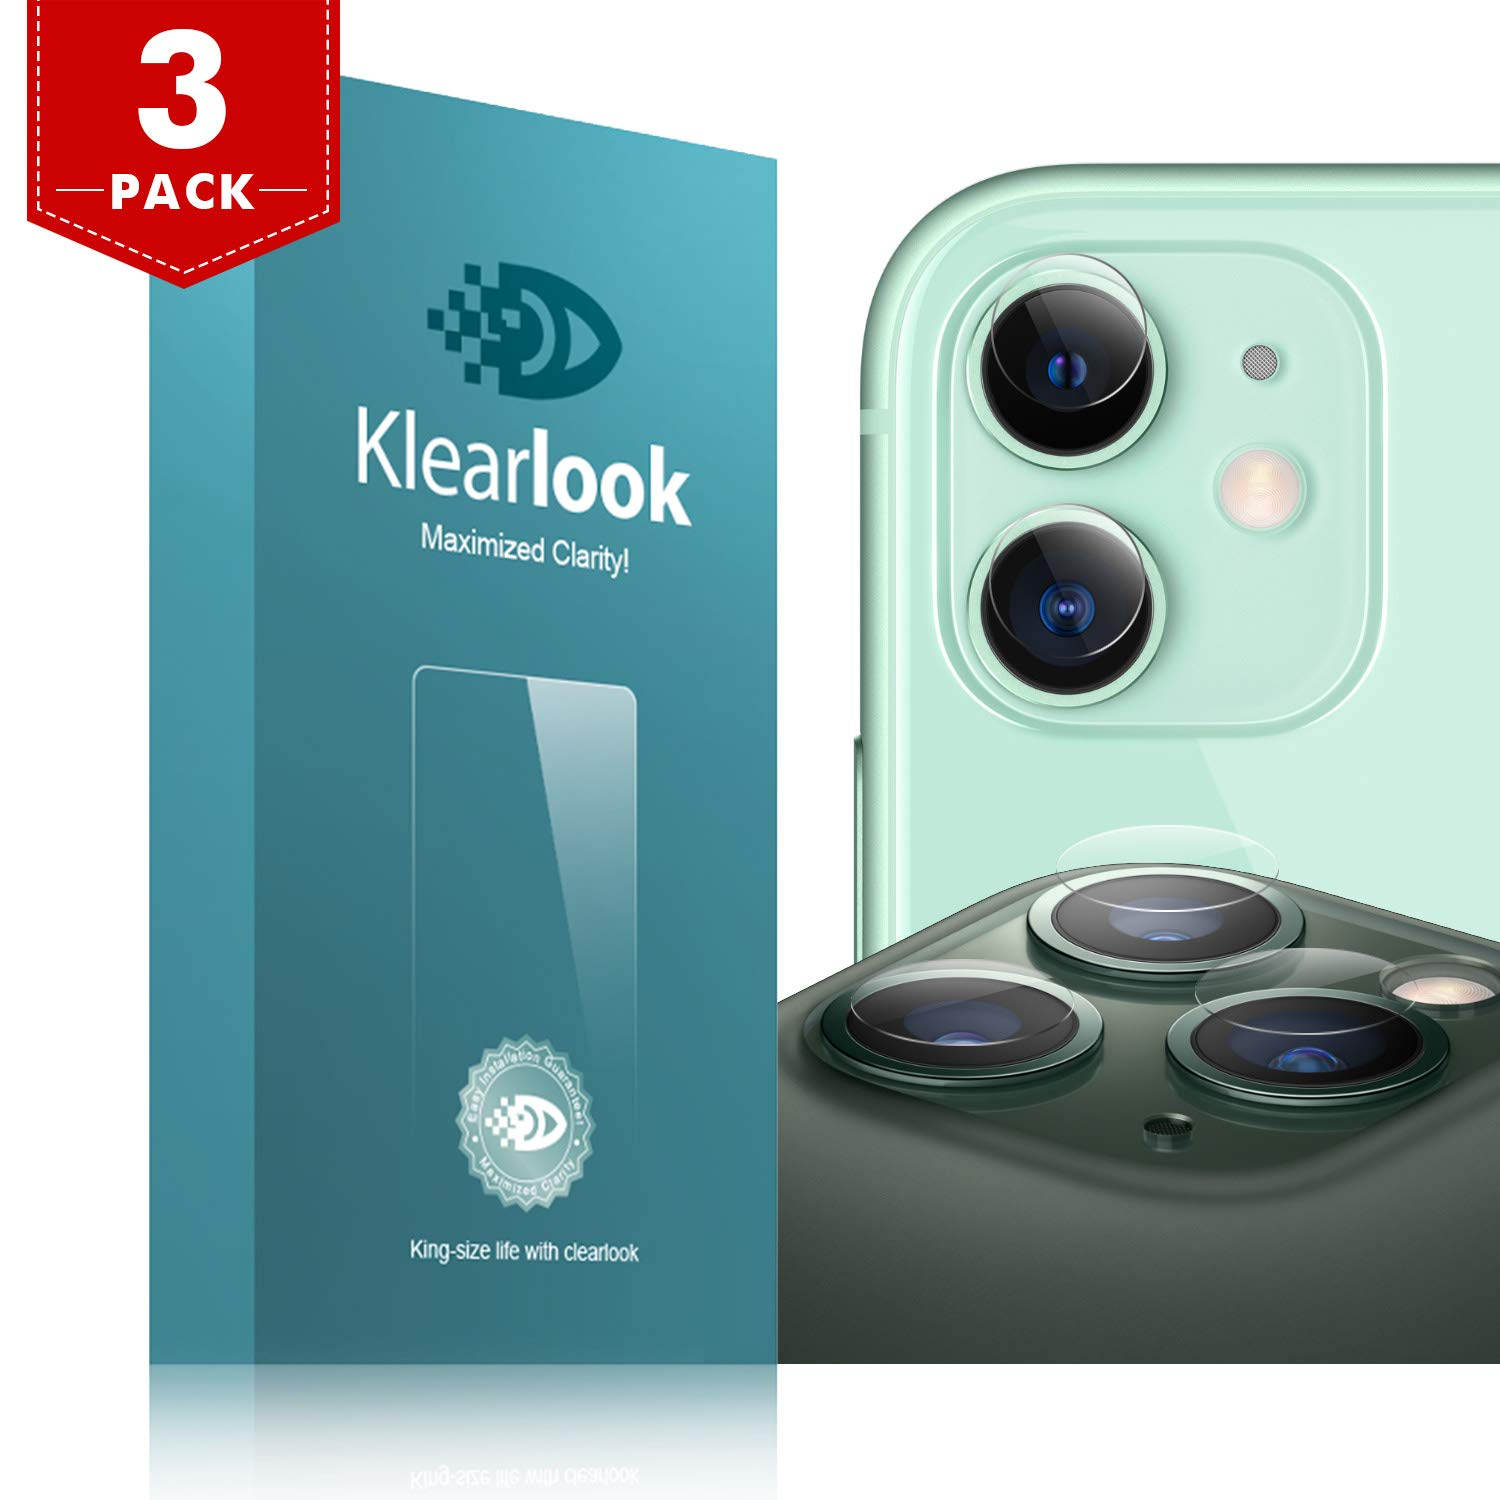 11/11 Pro/11 Pro Max Camera Lens Protector Klearlook Ultra HD/Thin Tempered Glass Back Camera Lens Cover Full Transparent/Anti-Scratch Compatible with iPhone 11,11 Pro,11 Pro Max 2019